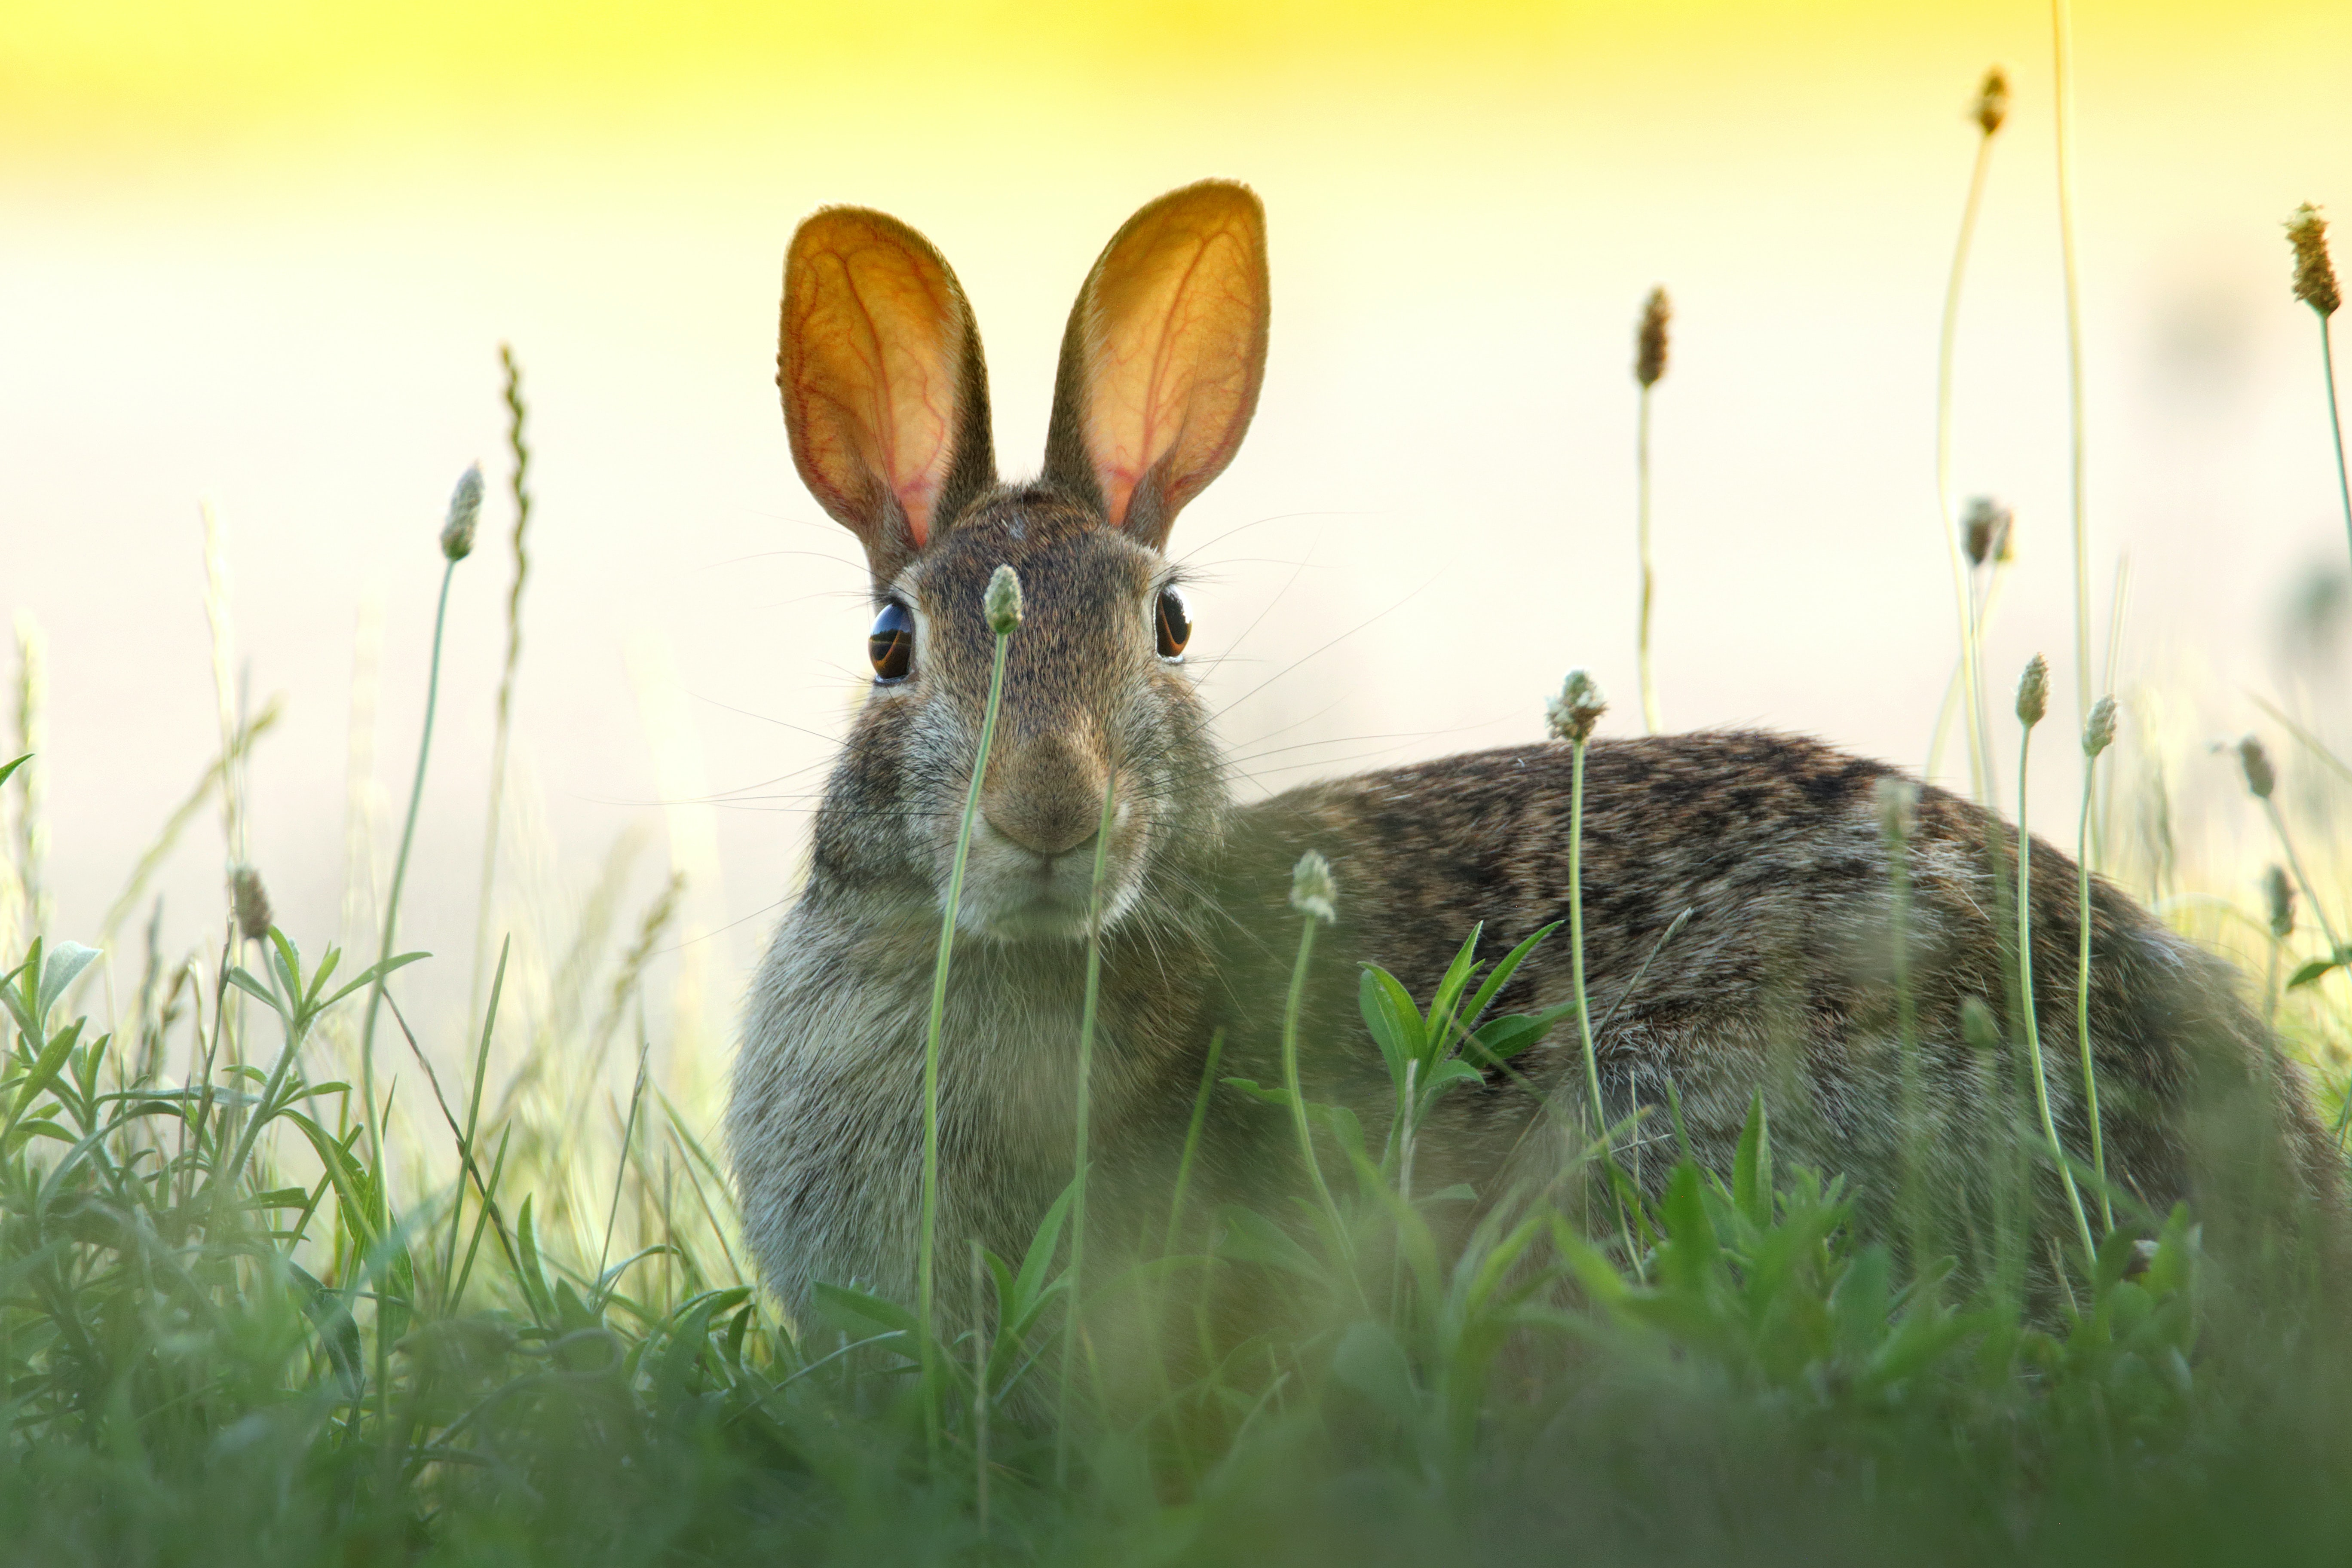 A hare looking through leaves of grass and plants into the camera